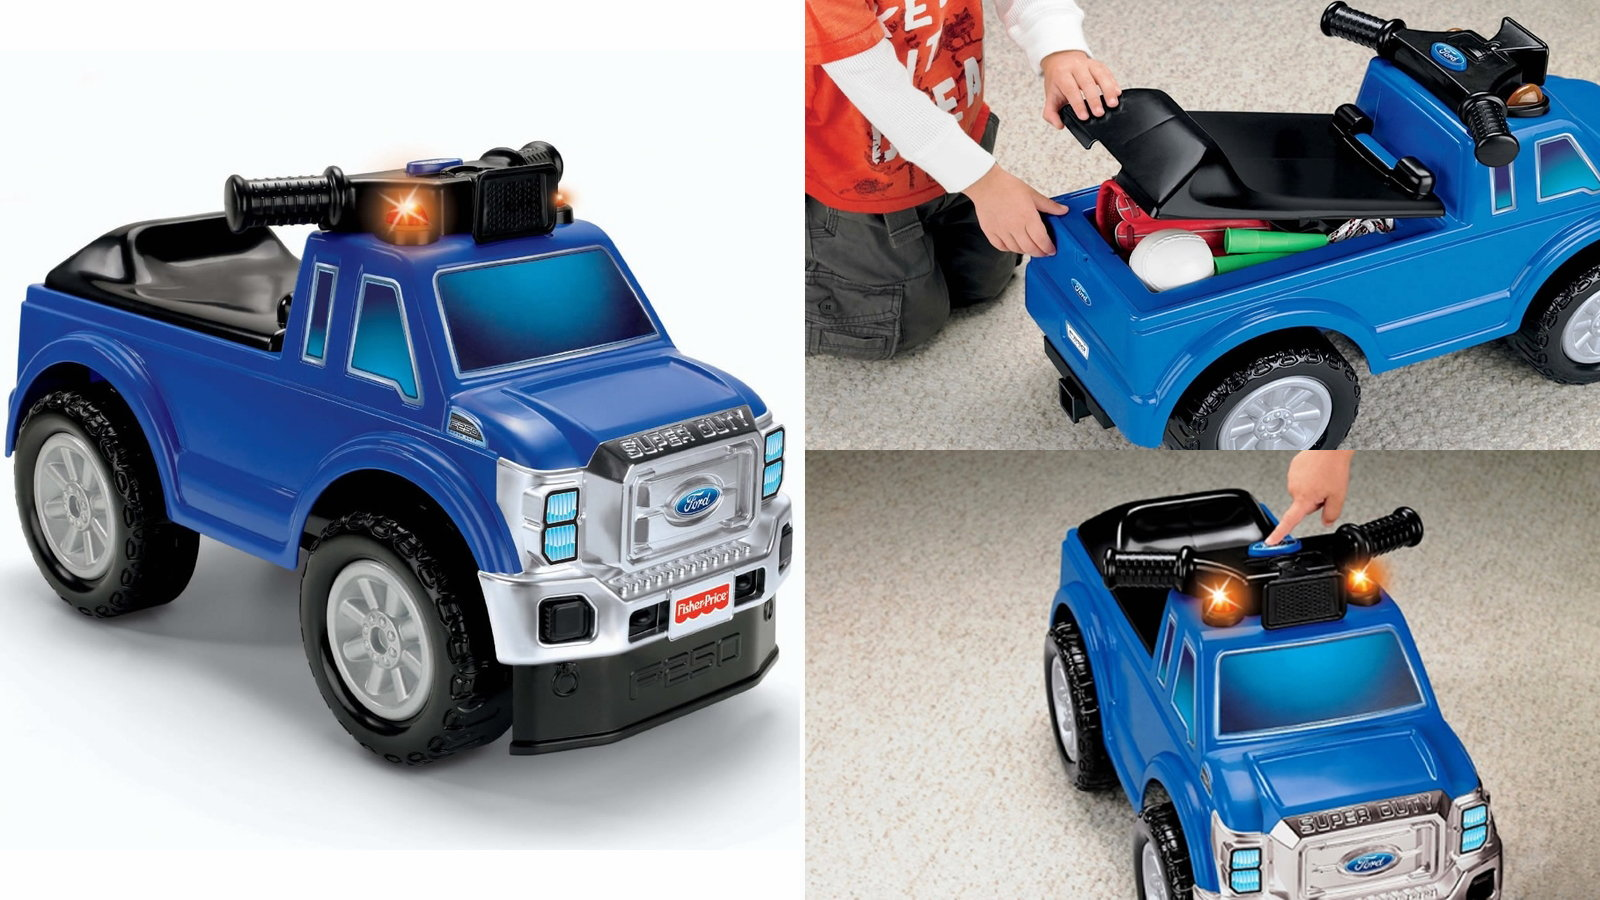 Fisher-Price F250 Super Duty